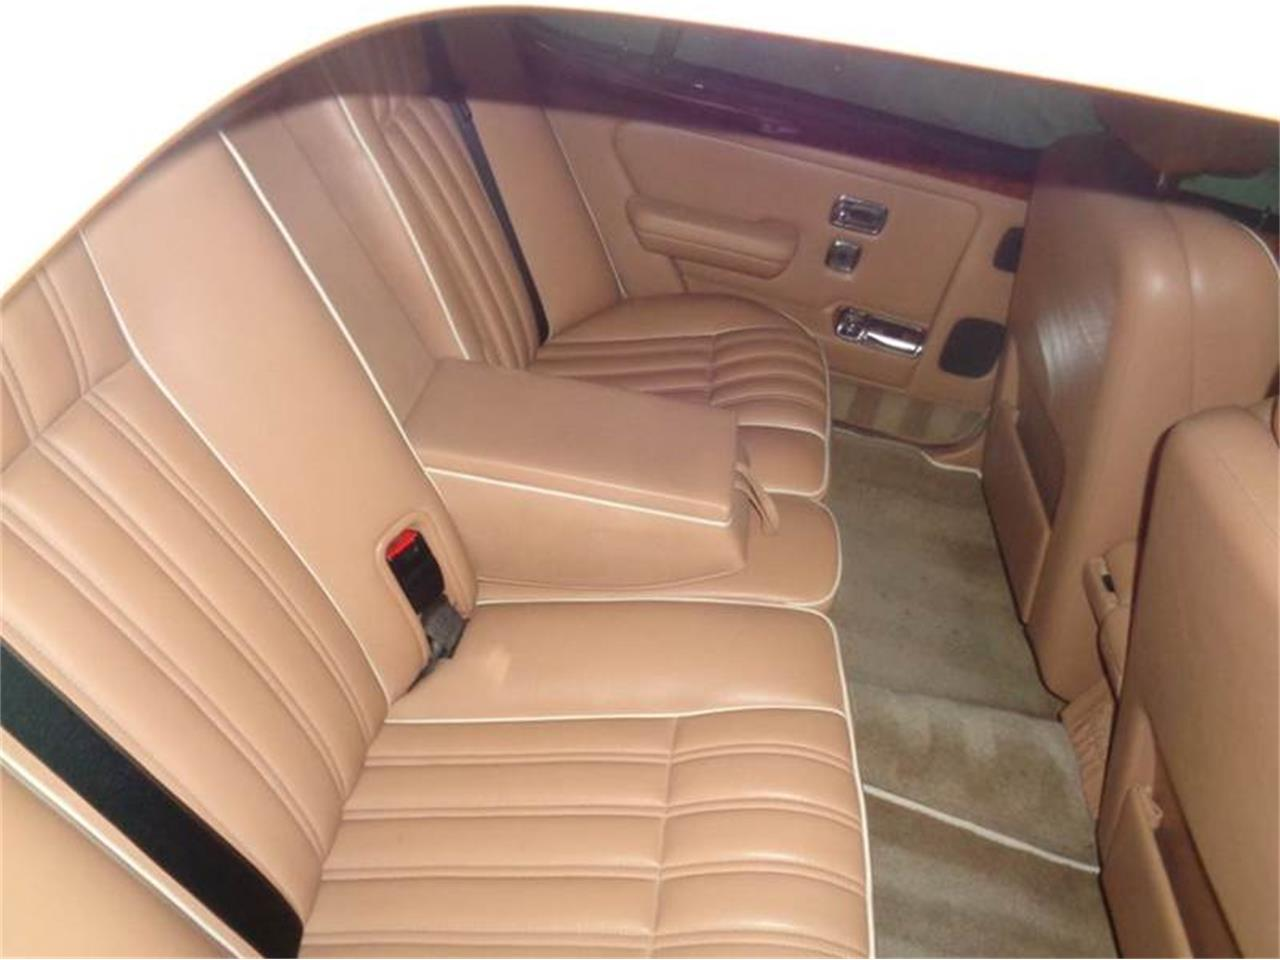 Large Picture of '96 Rolls-Royce Silver Spur located in Fort Lauderdale Florida - $24,950.00 Offered by Prestigious Euro Cars - E000